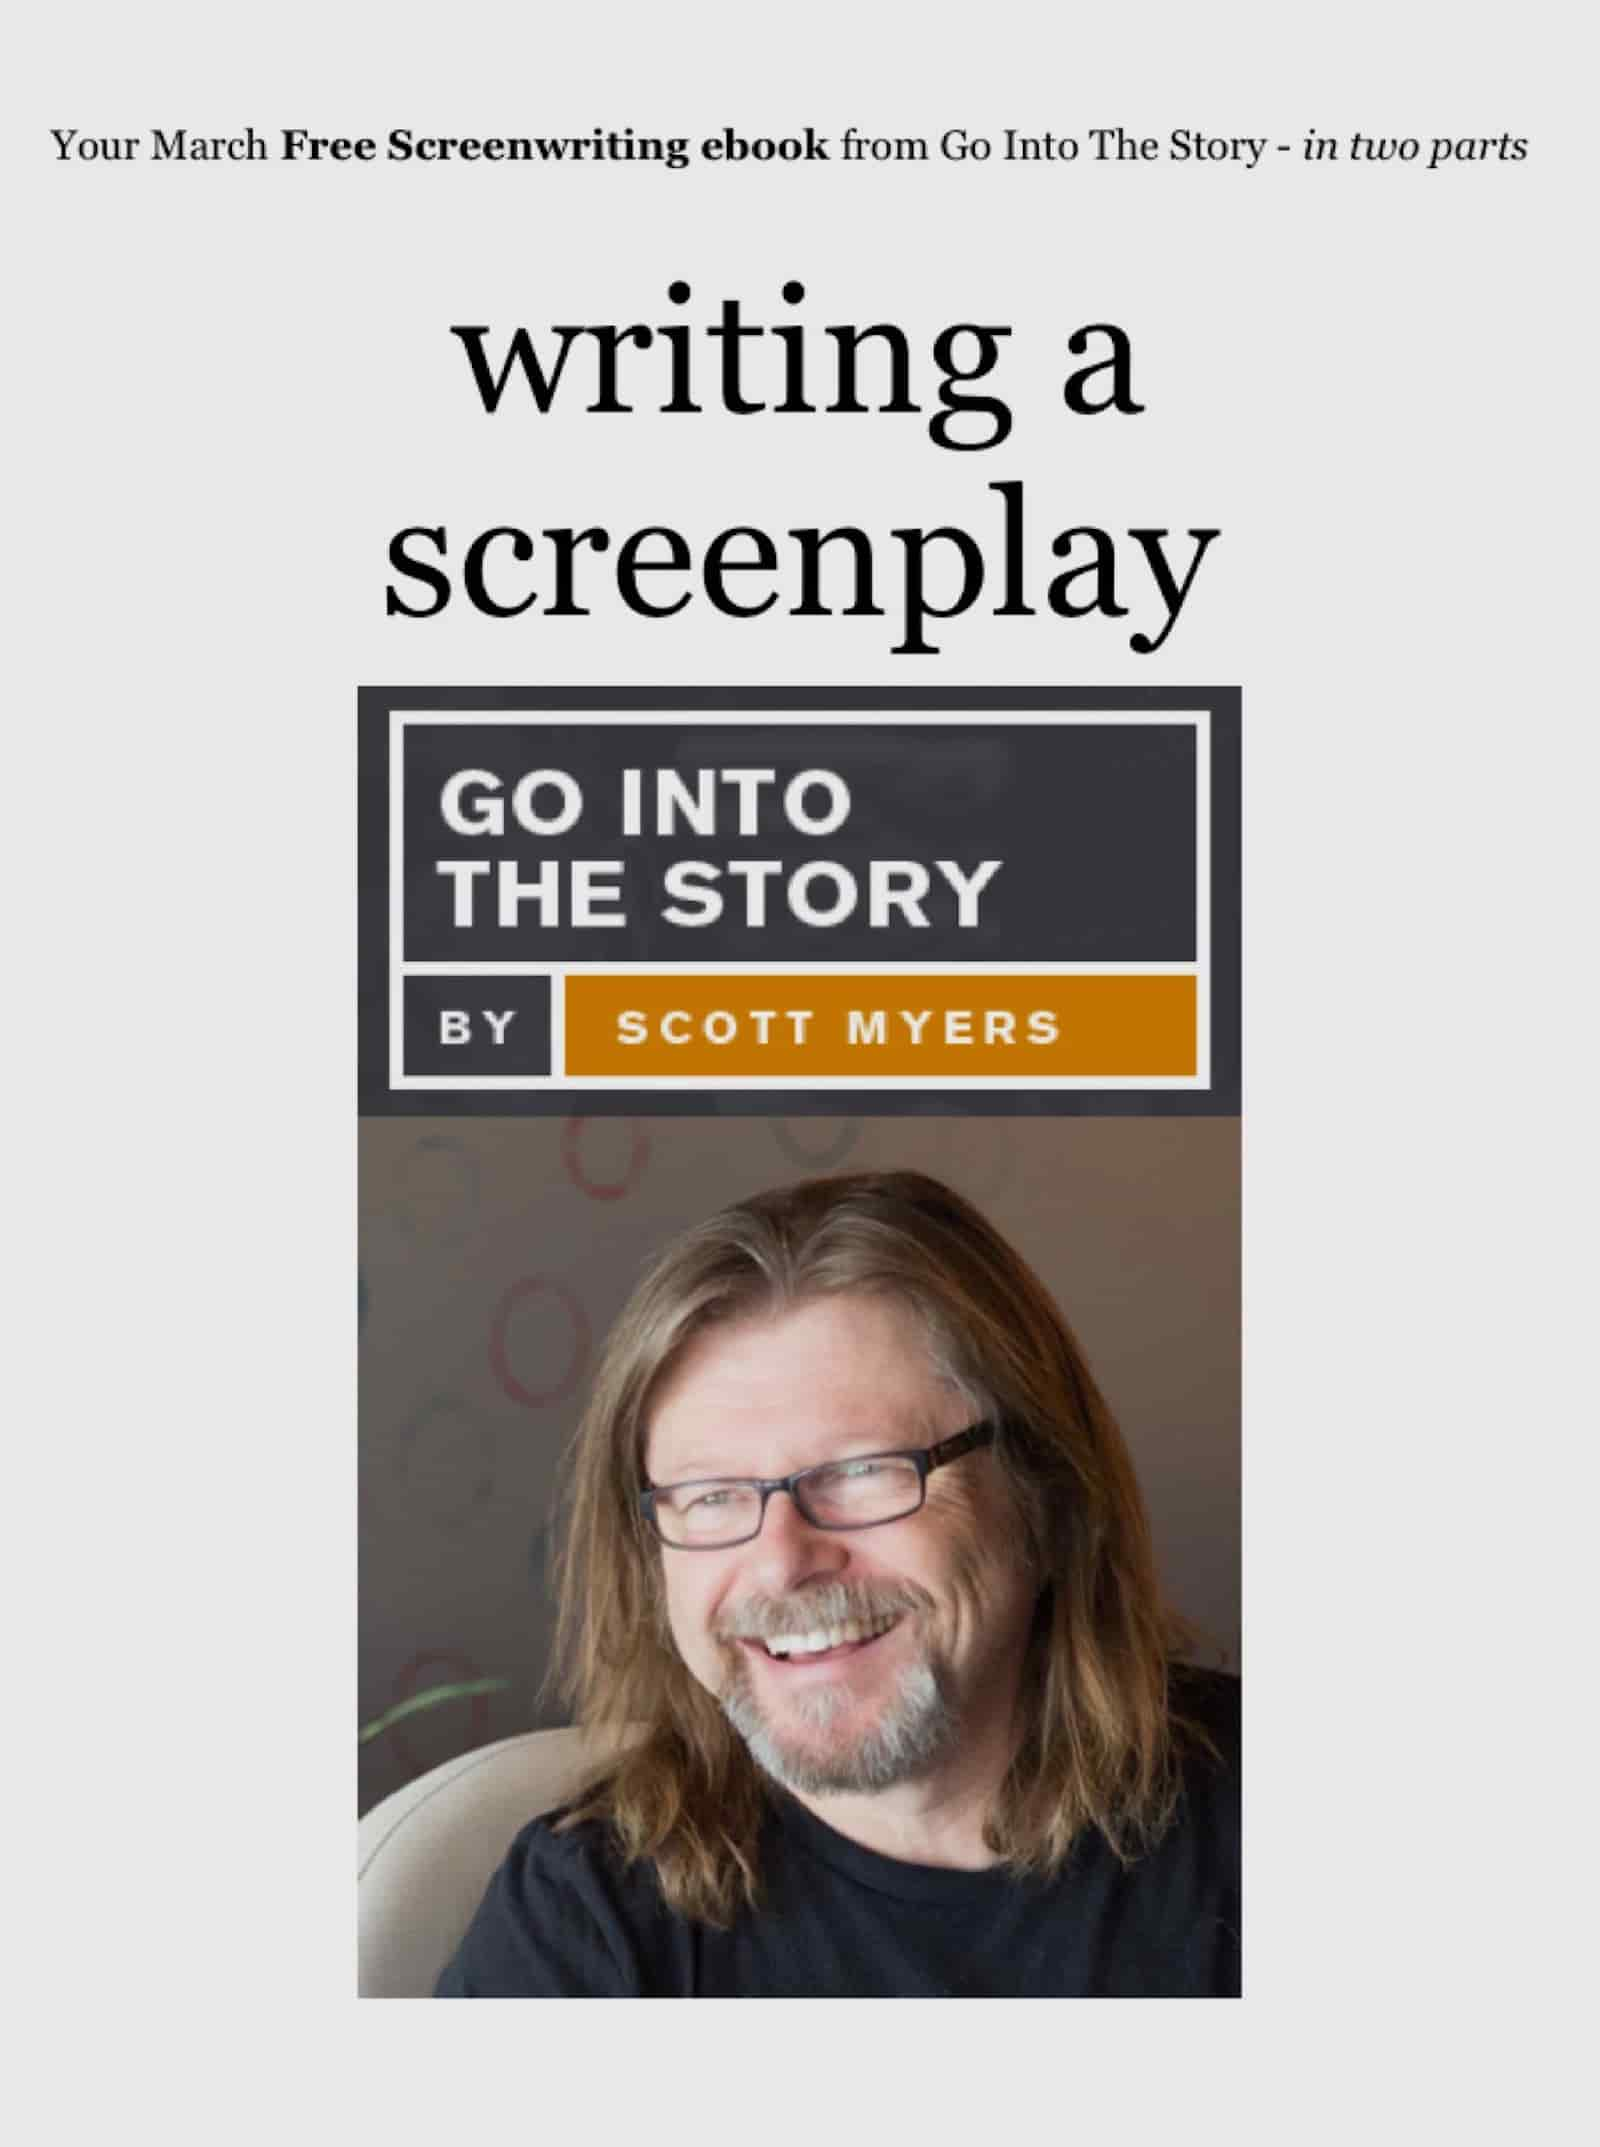 Best Screenwriting Website - Script Writers - Scott Myers